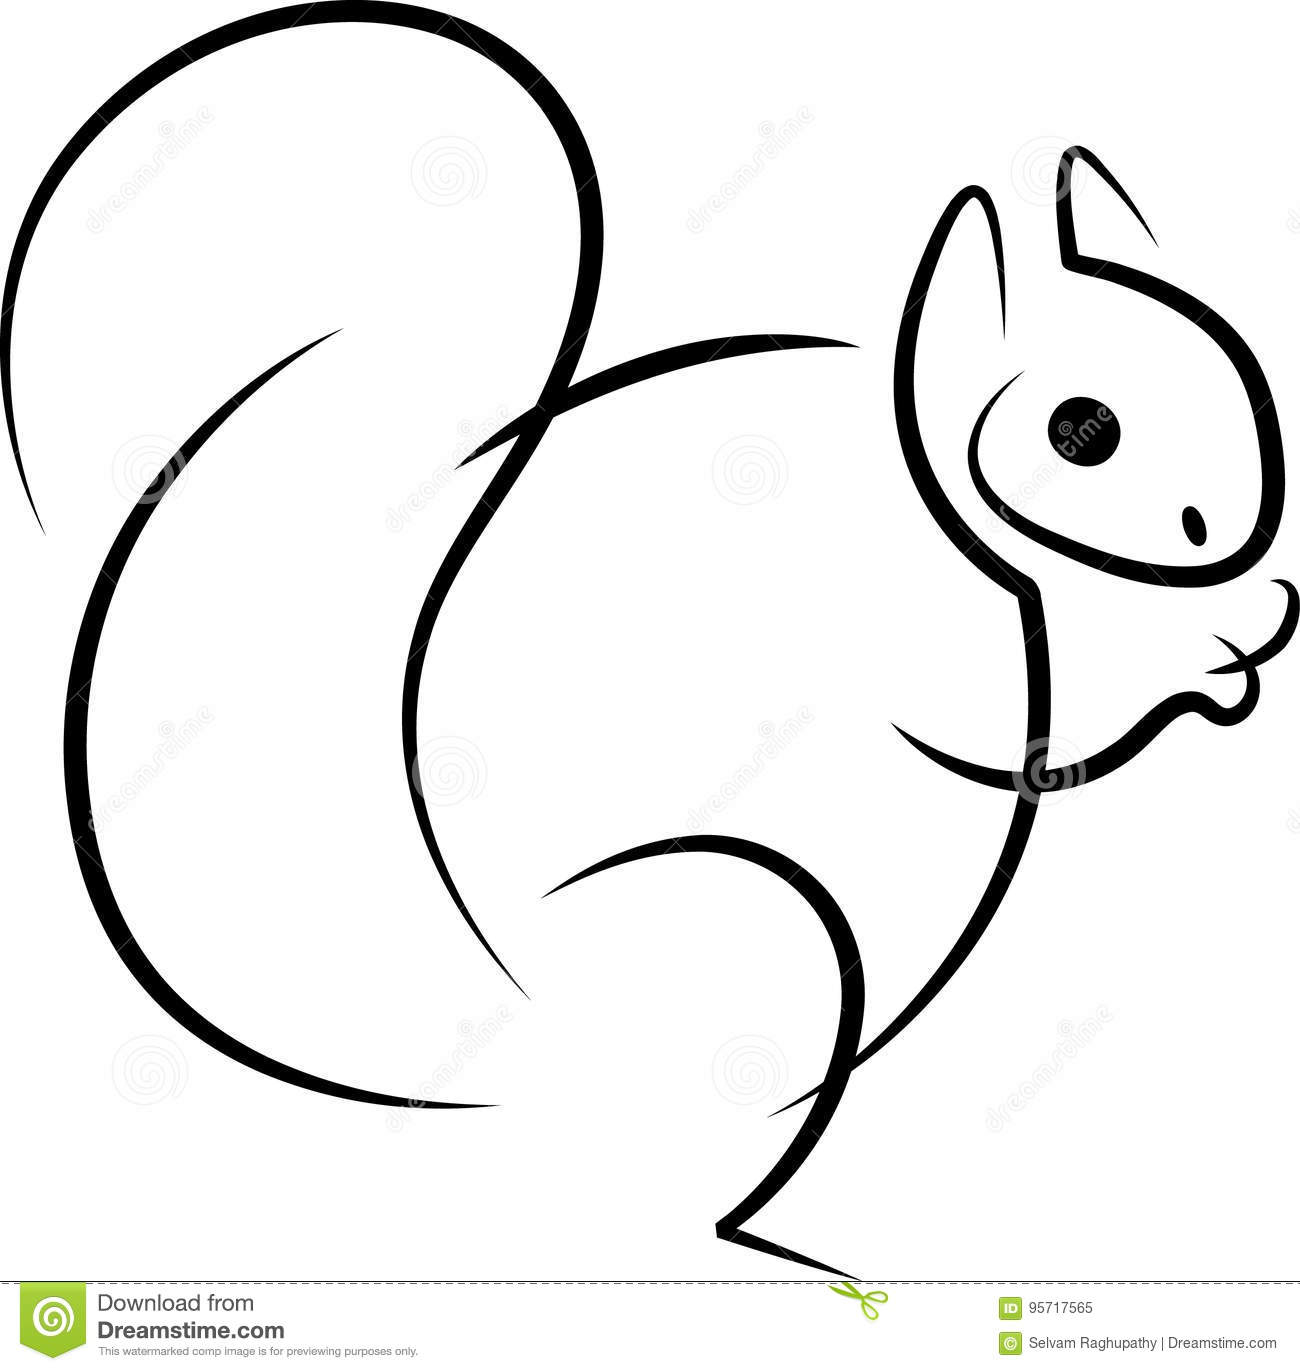 Eating Squirrel Abstract Stock Vector Illustration Of